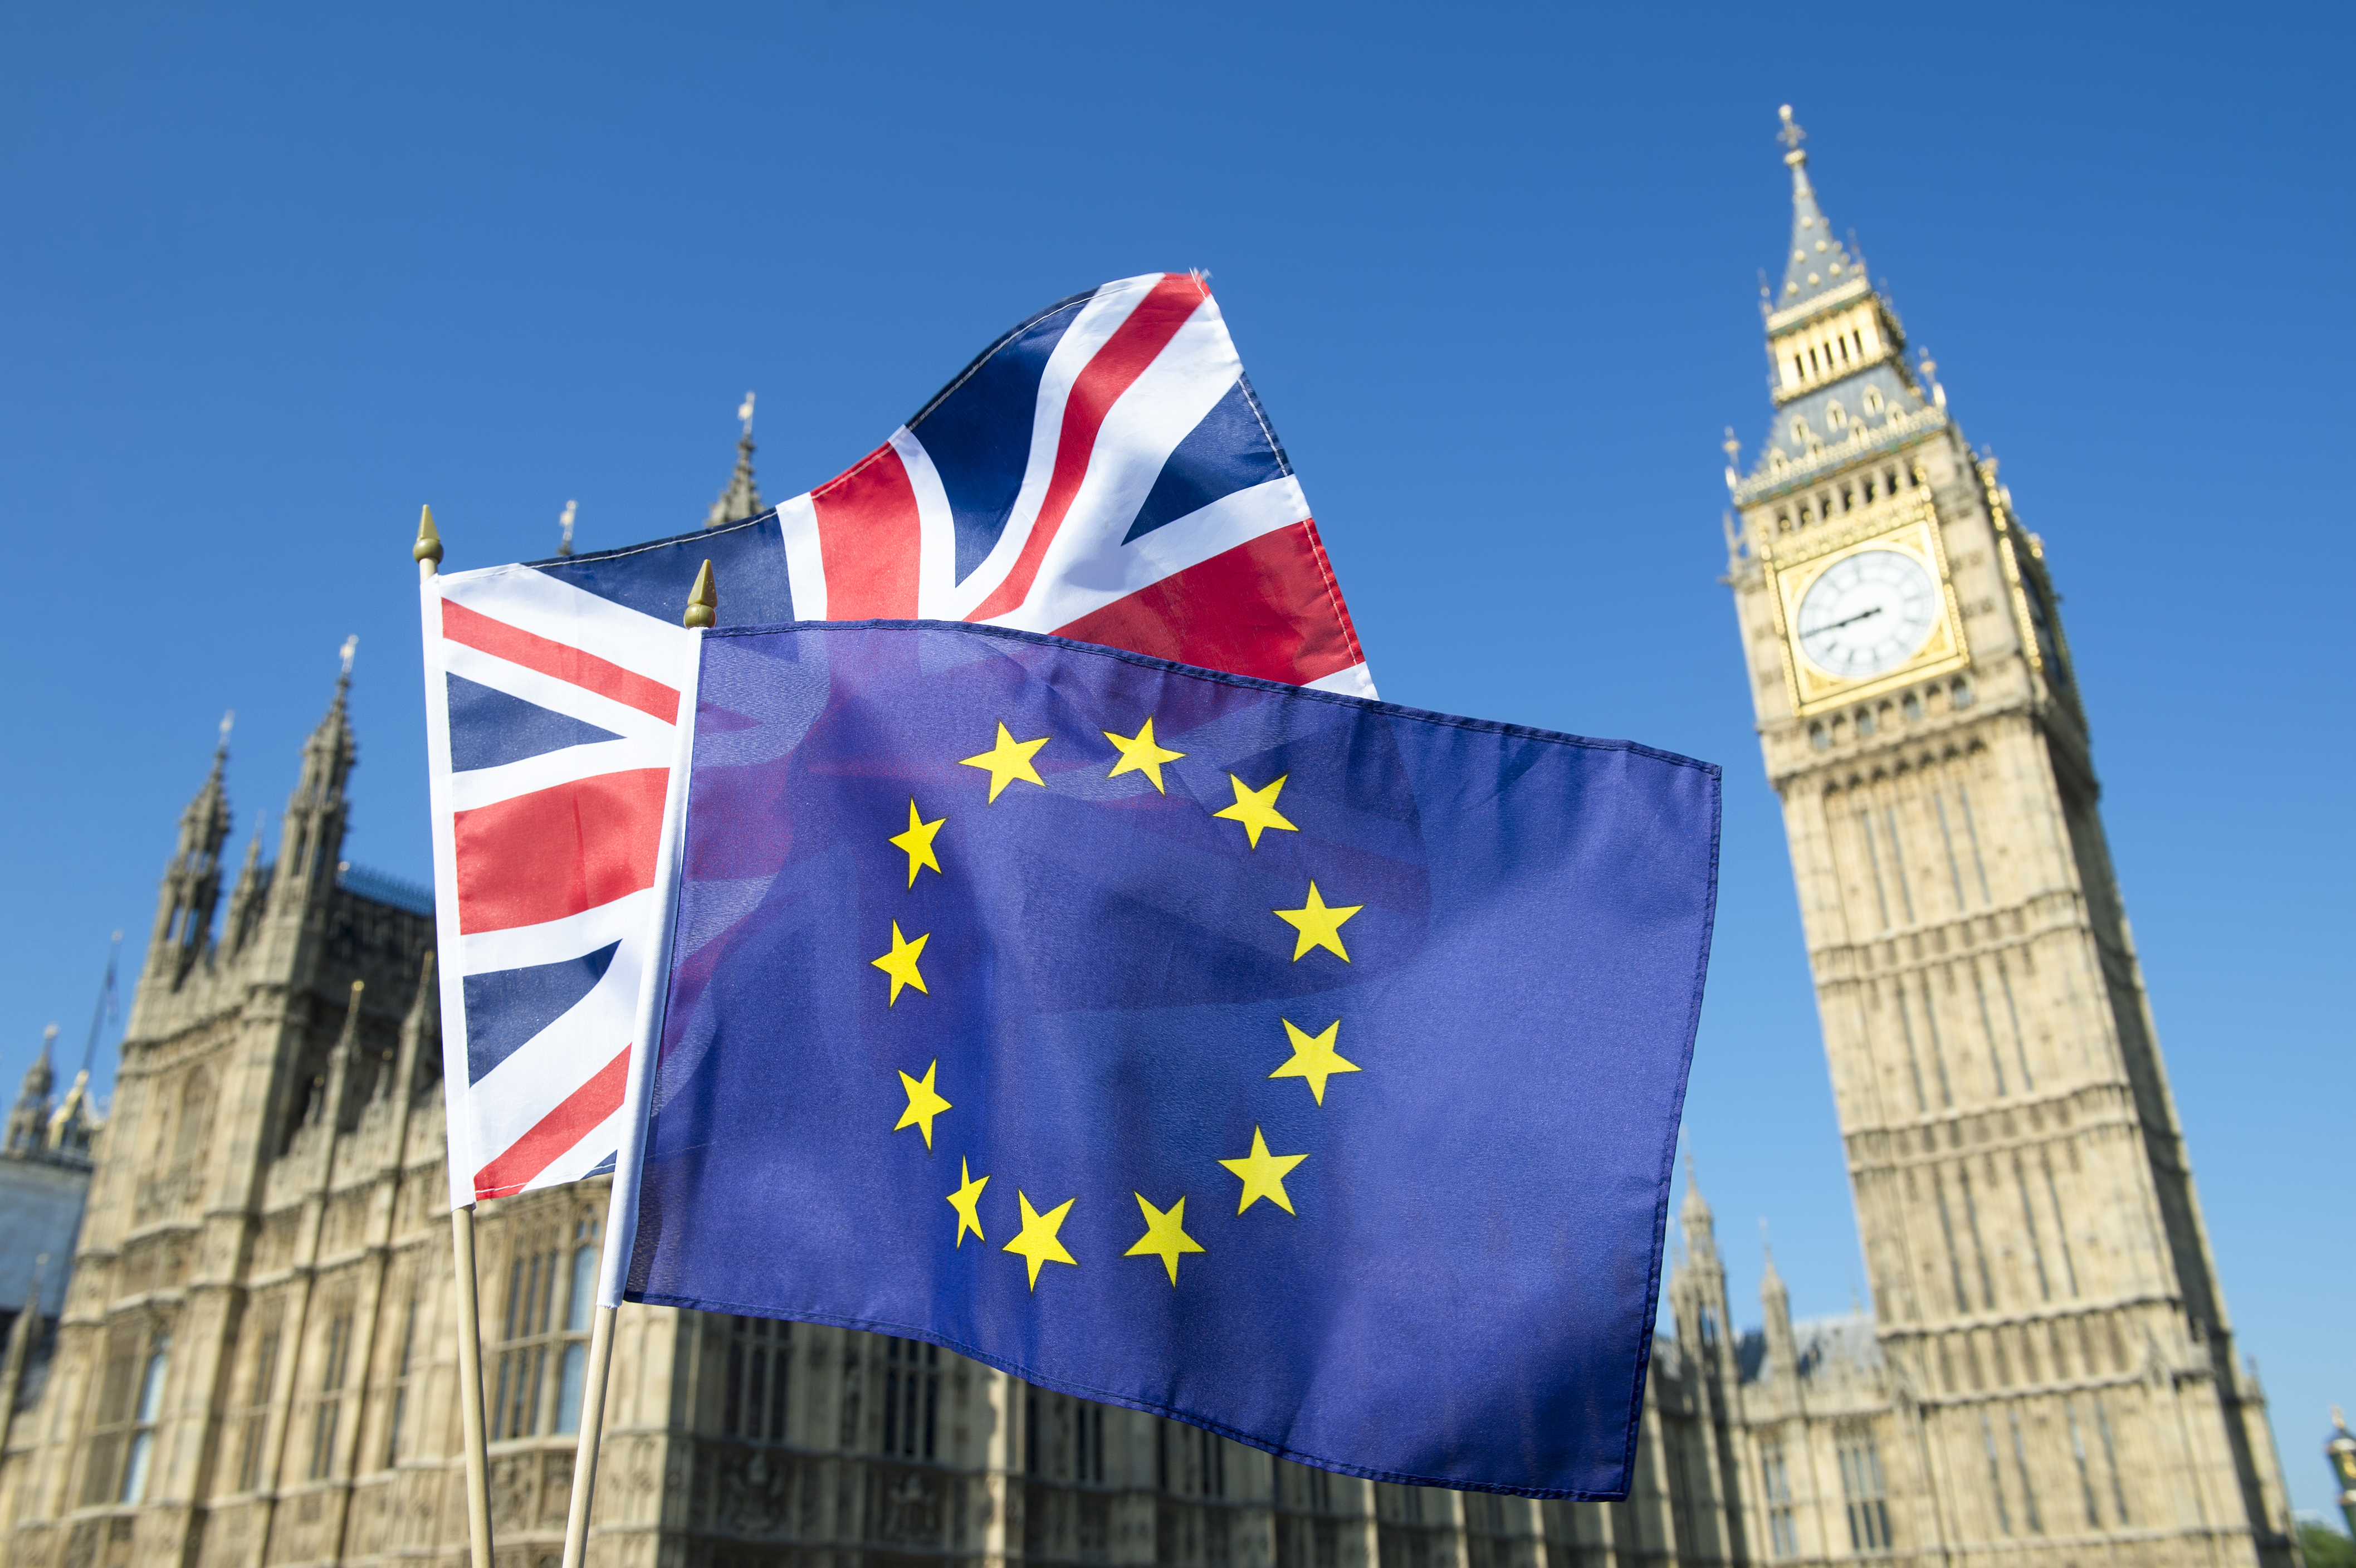 Picture of British and European flag in front of Big Ben